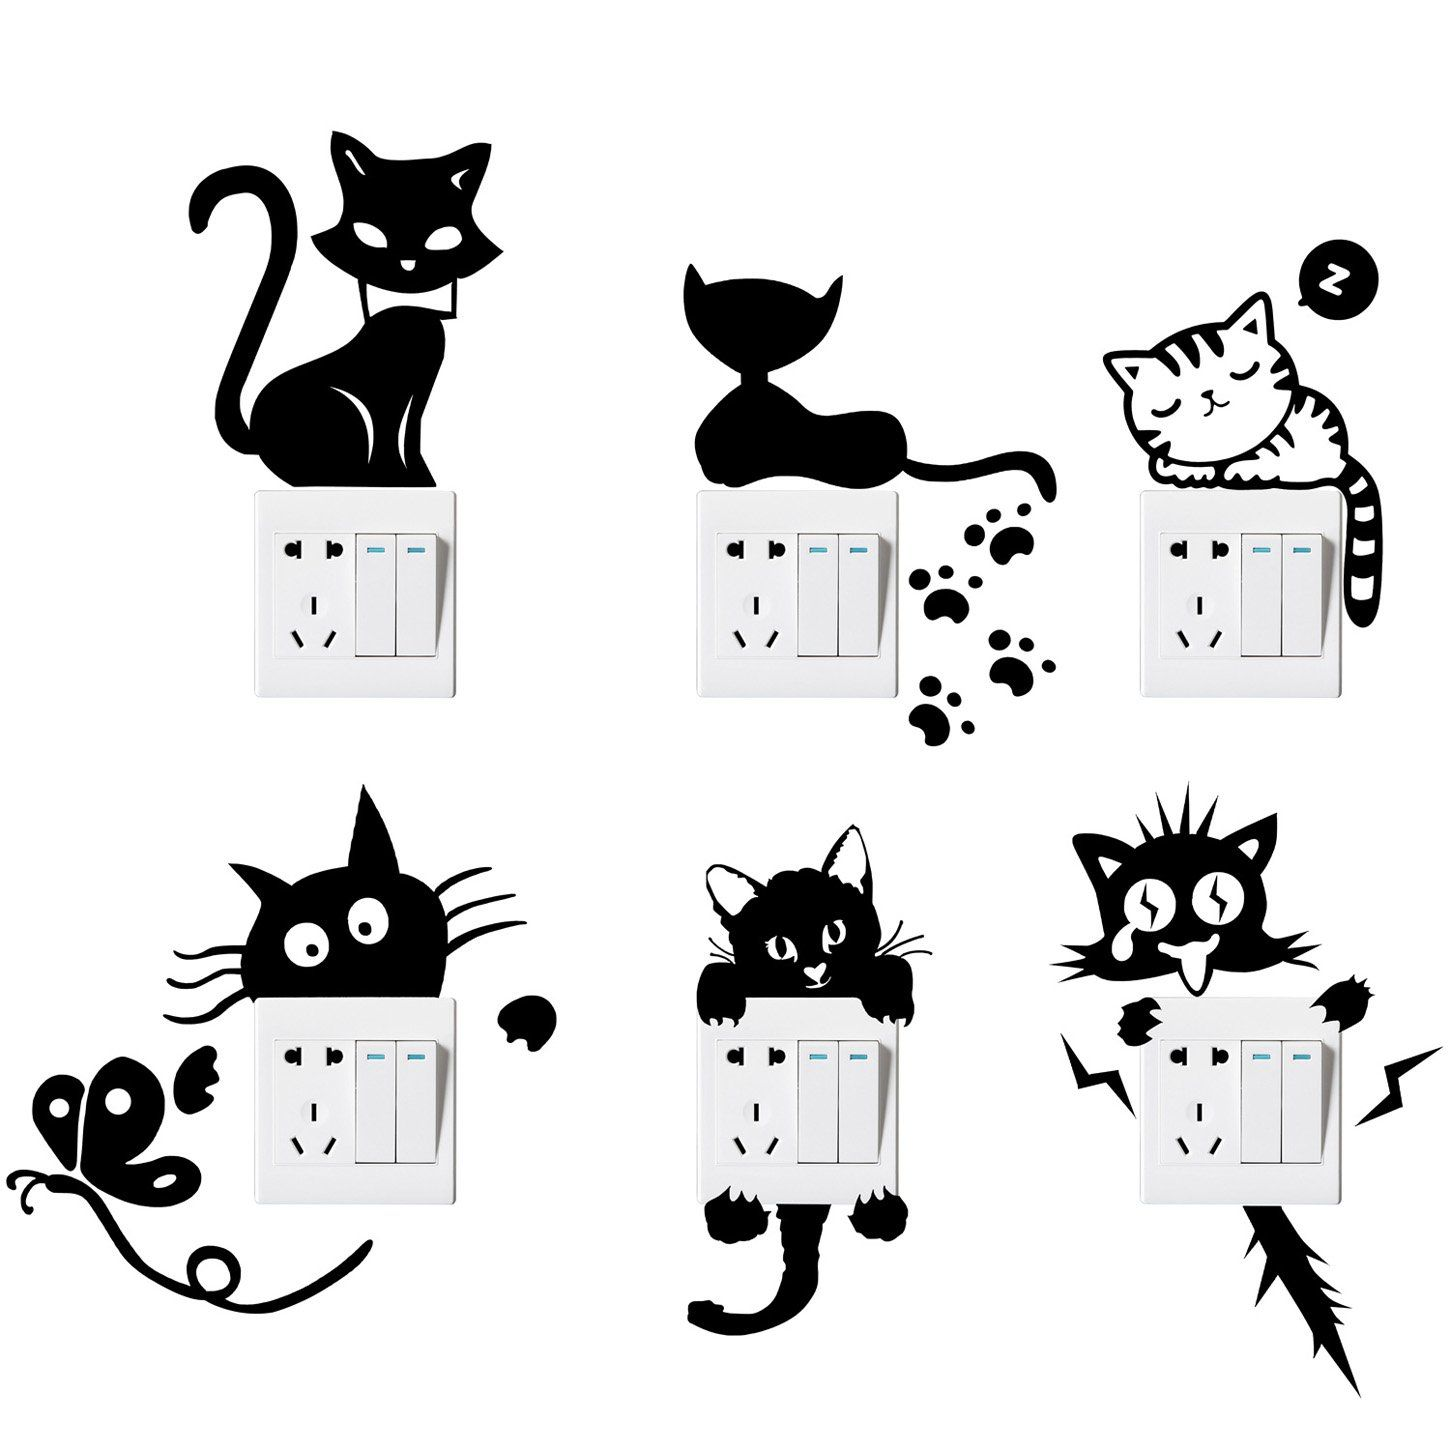 DIY Black Funny Cat Switch Stickers Cute Wall Decals Bedroom Parlor Home Decor S